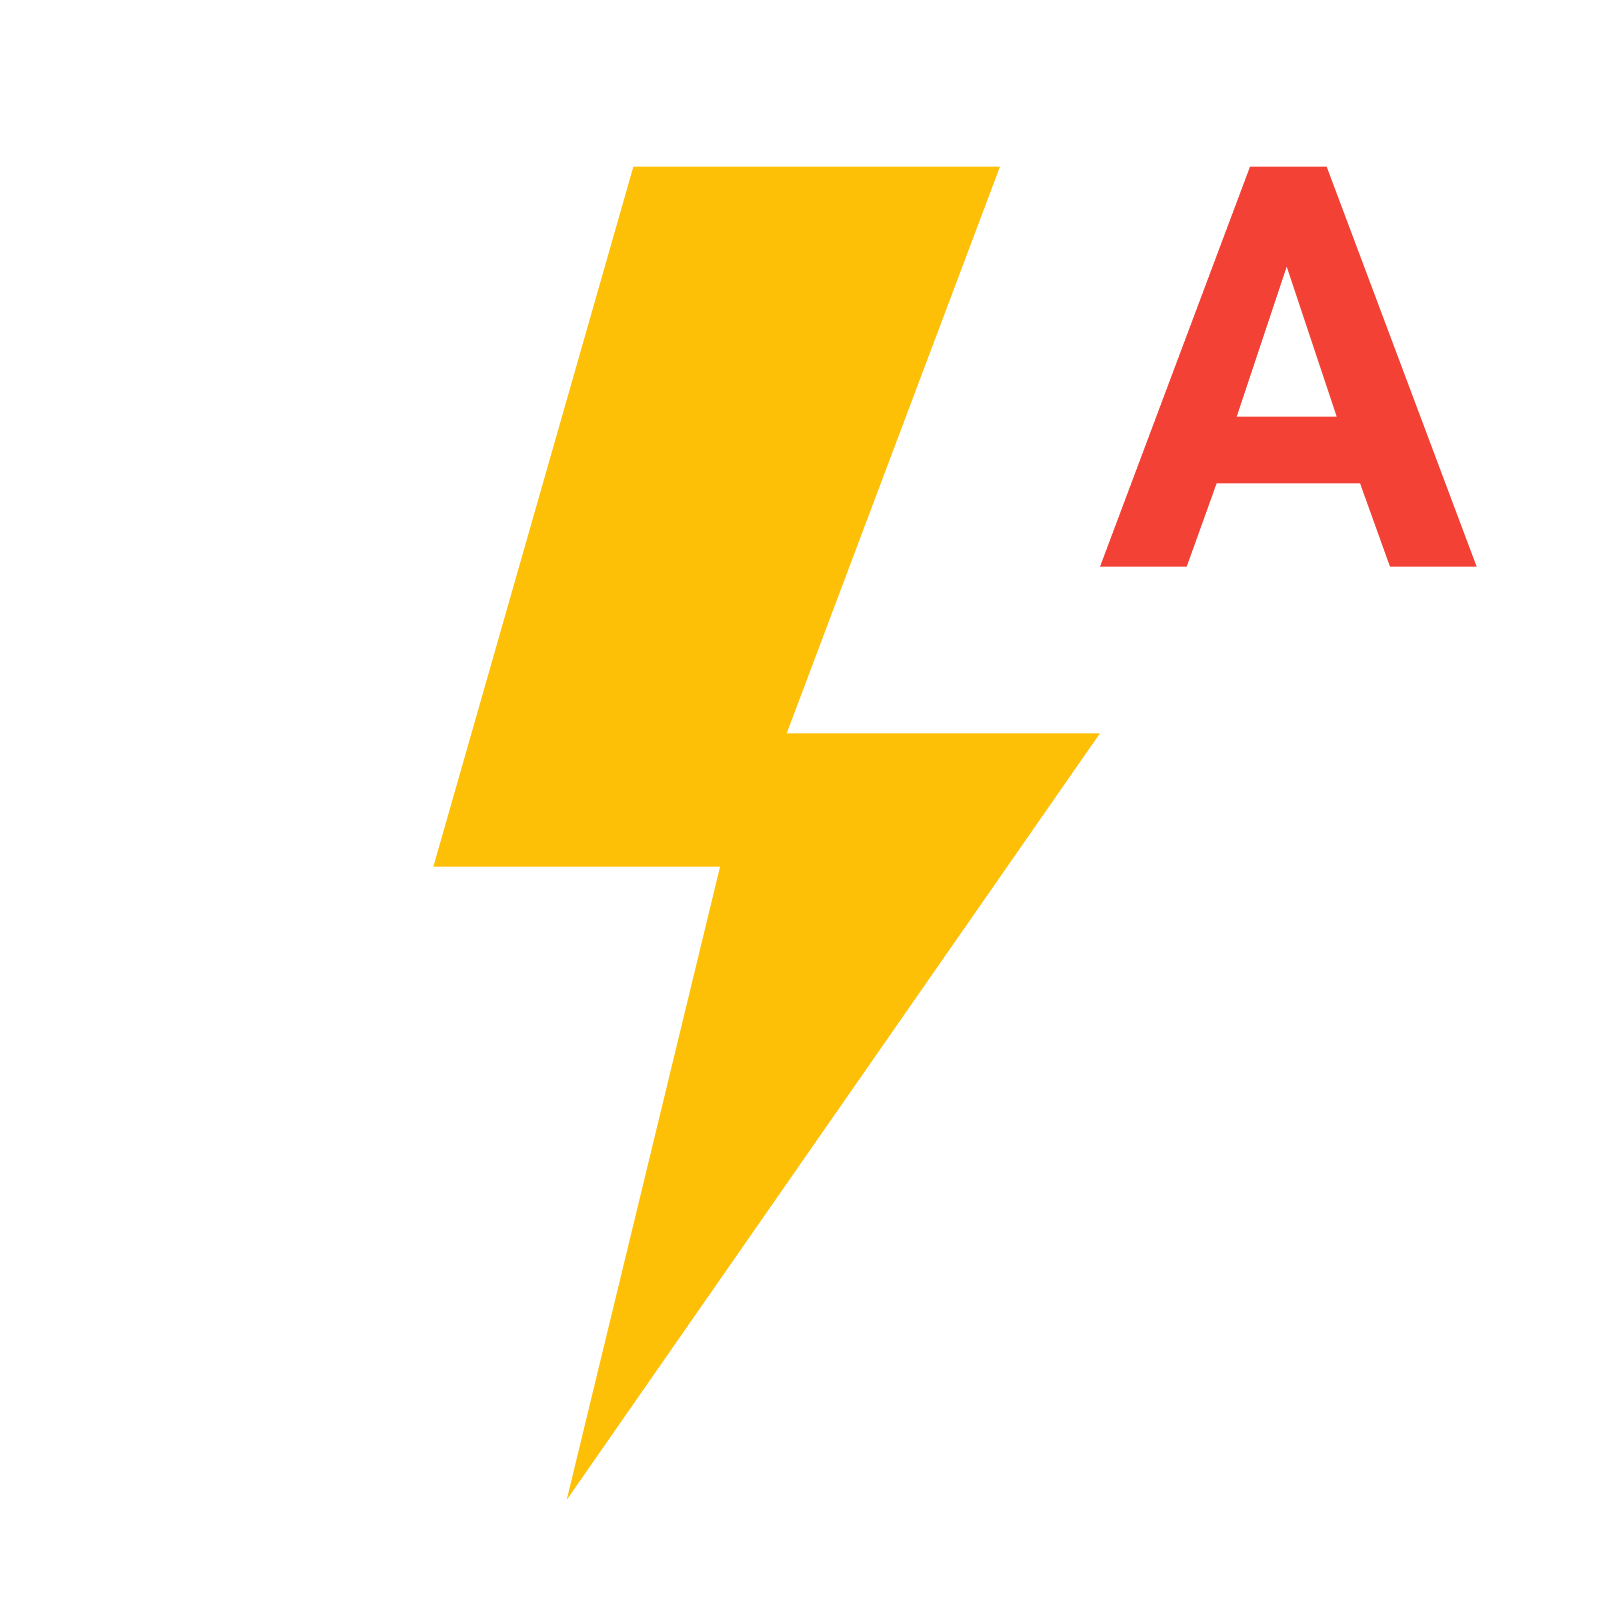 Flash lightning png. Auto icon free download